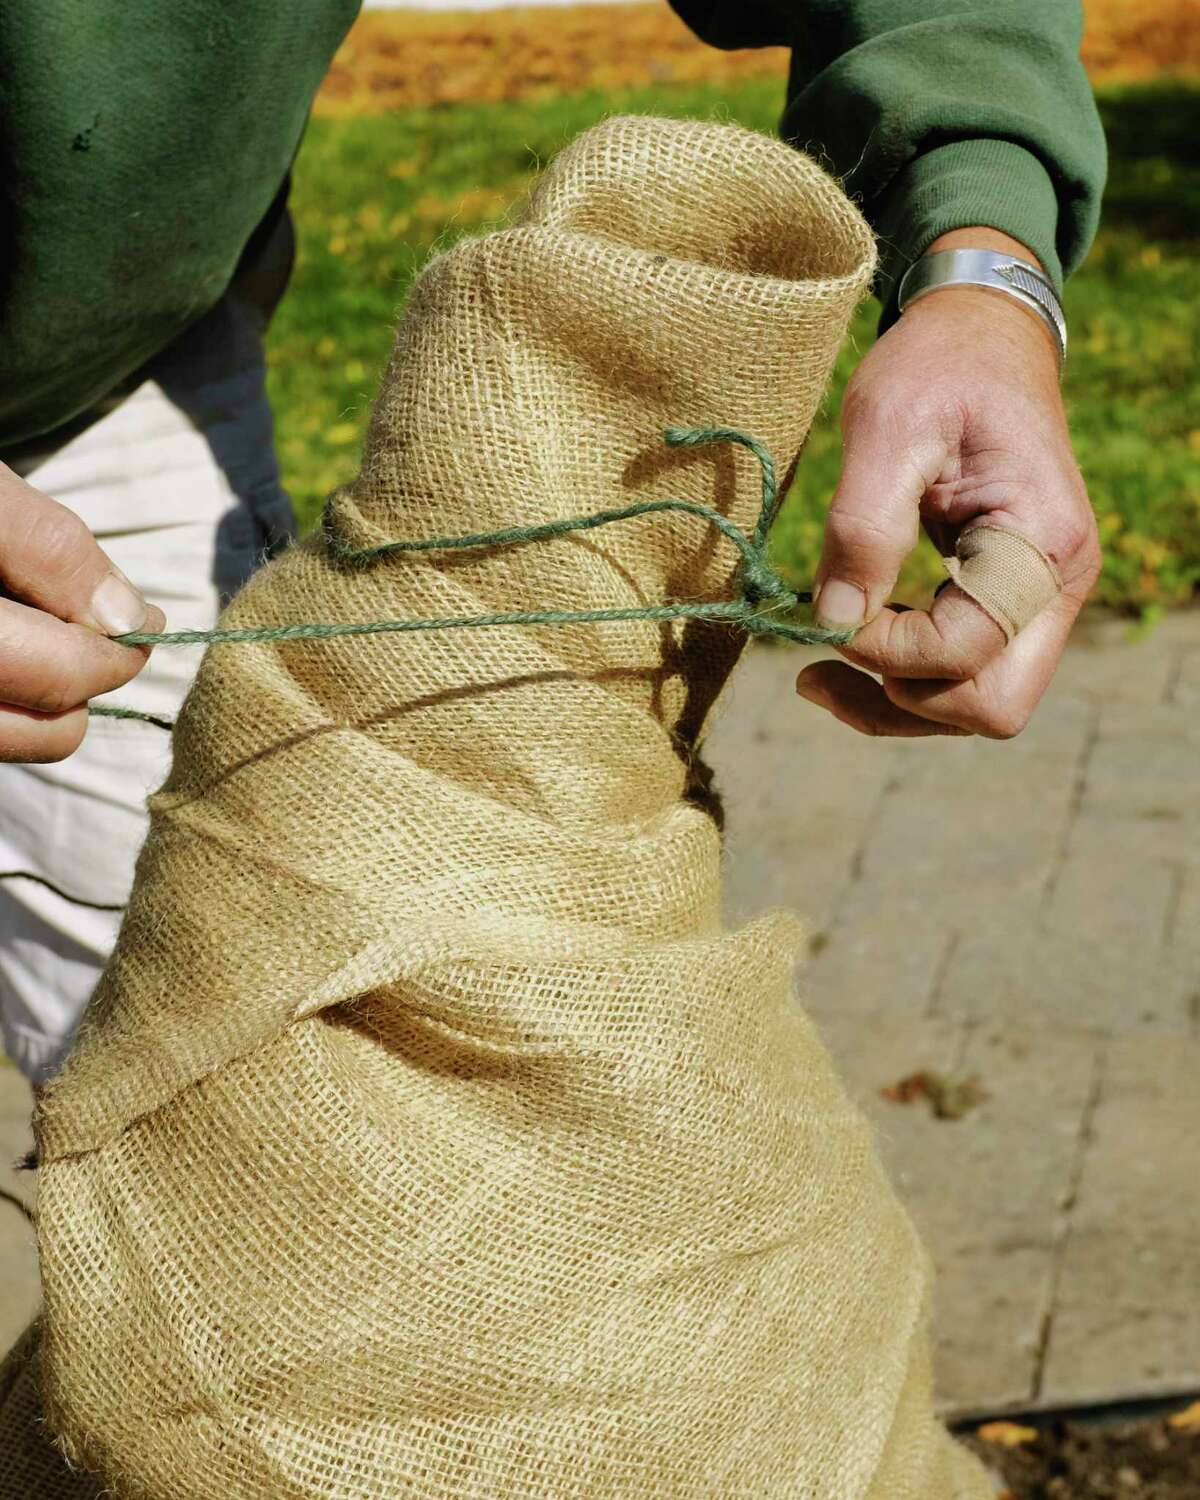 Jason Schultz, a garden designer at Faddegon's, demonstrates how to tie up burlap after wrapping up a dwarf Alberta spruce on Tuesday, Oct. 6, 2020, in Latham, N.Y. (Paul Buckowski/Times Union)